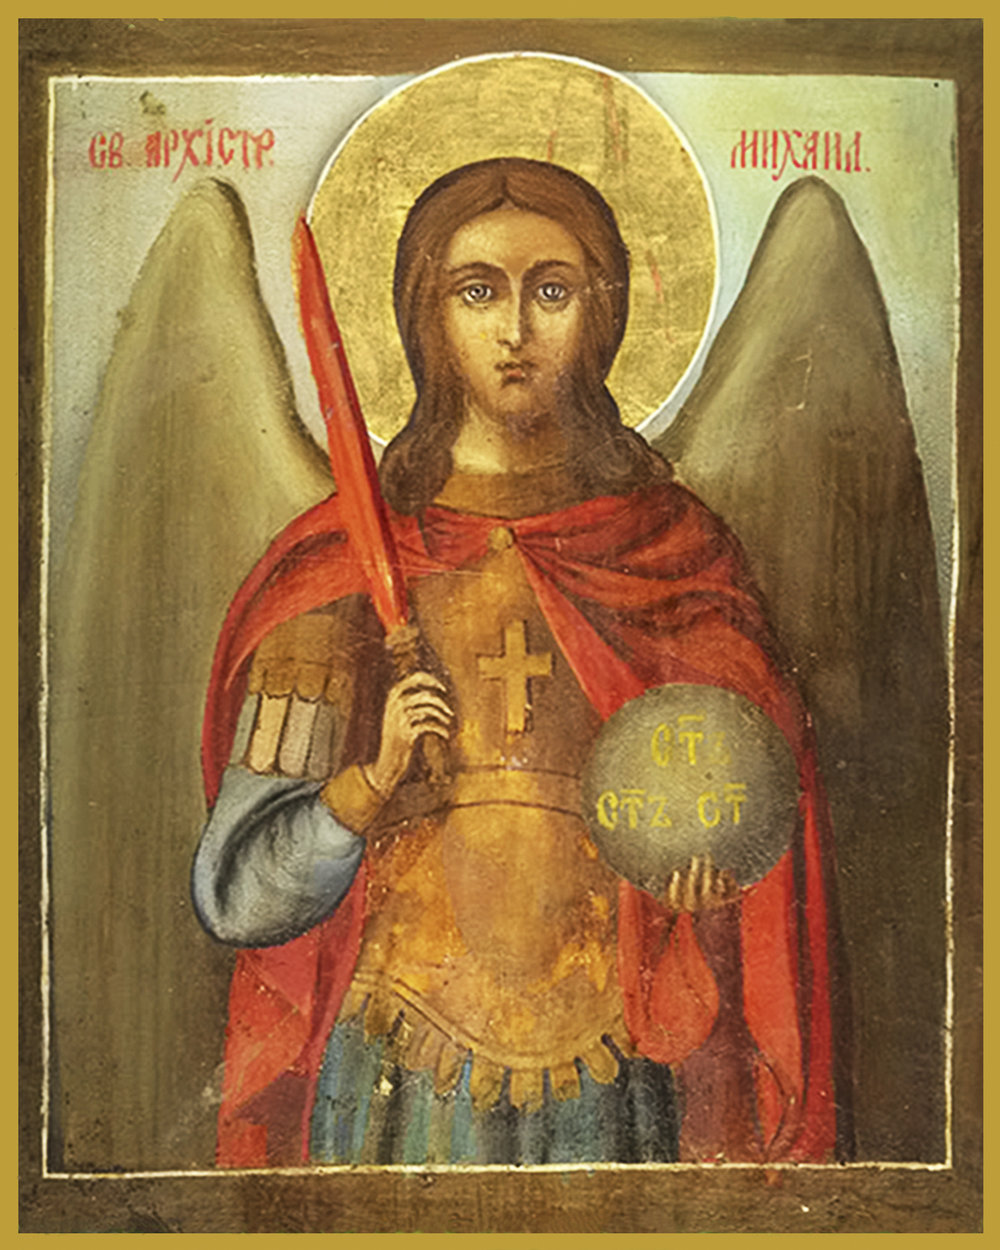 AR-MIC - ARCHANGEL MICHAELSPIRITUAL WARRIOR, PRINCE OF LIGHTHis name means